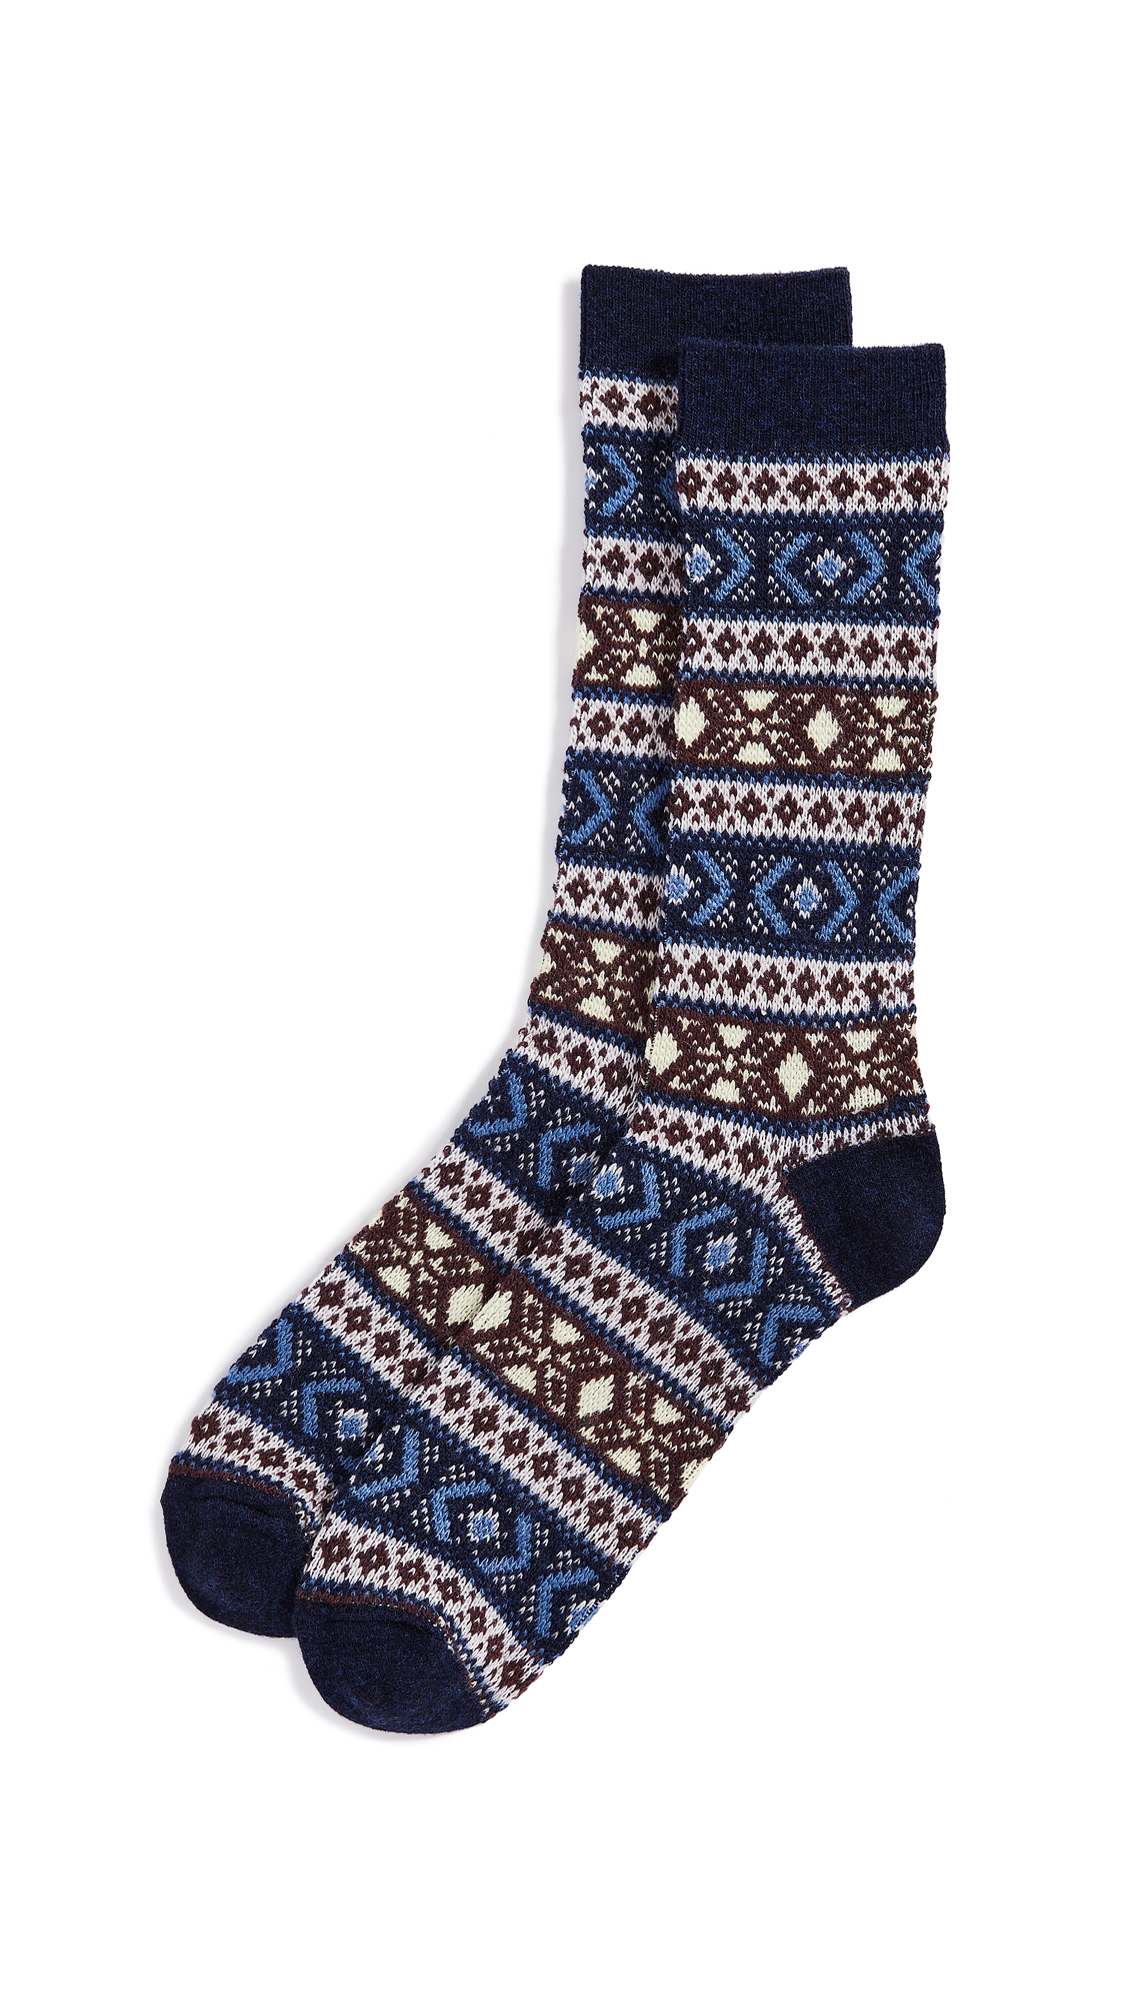 ANONYMOUS ISM Wool Jacquard Crew Socks in Navy